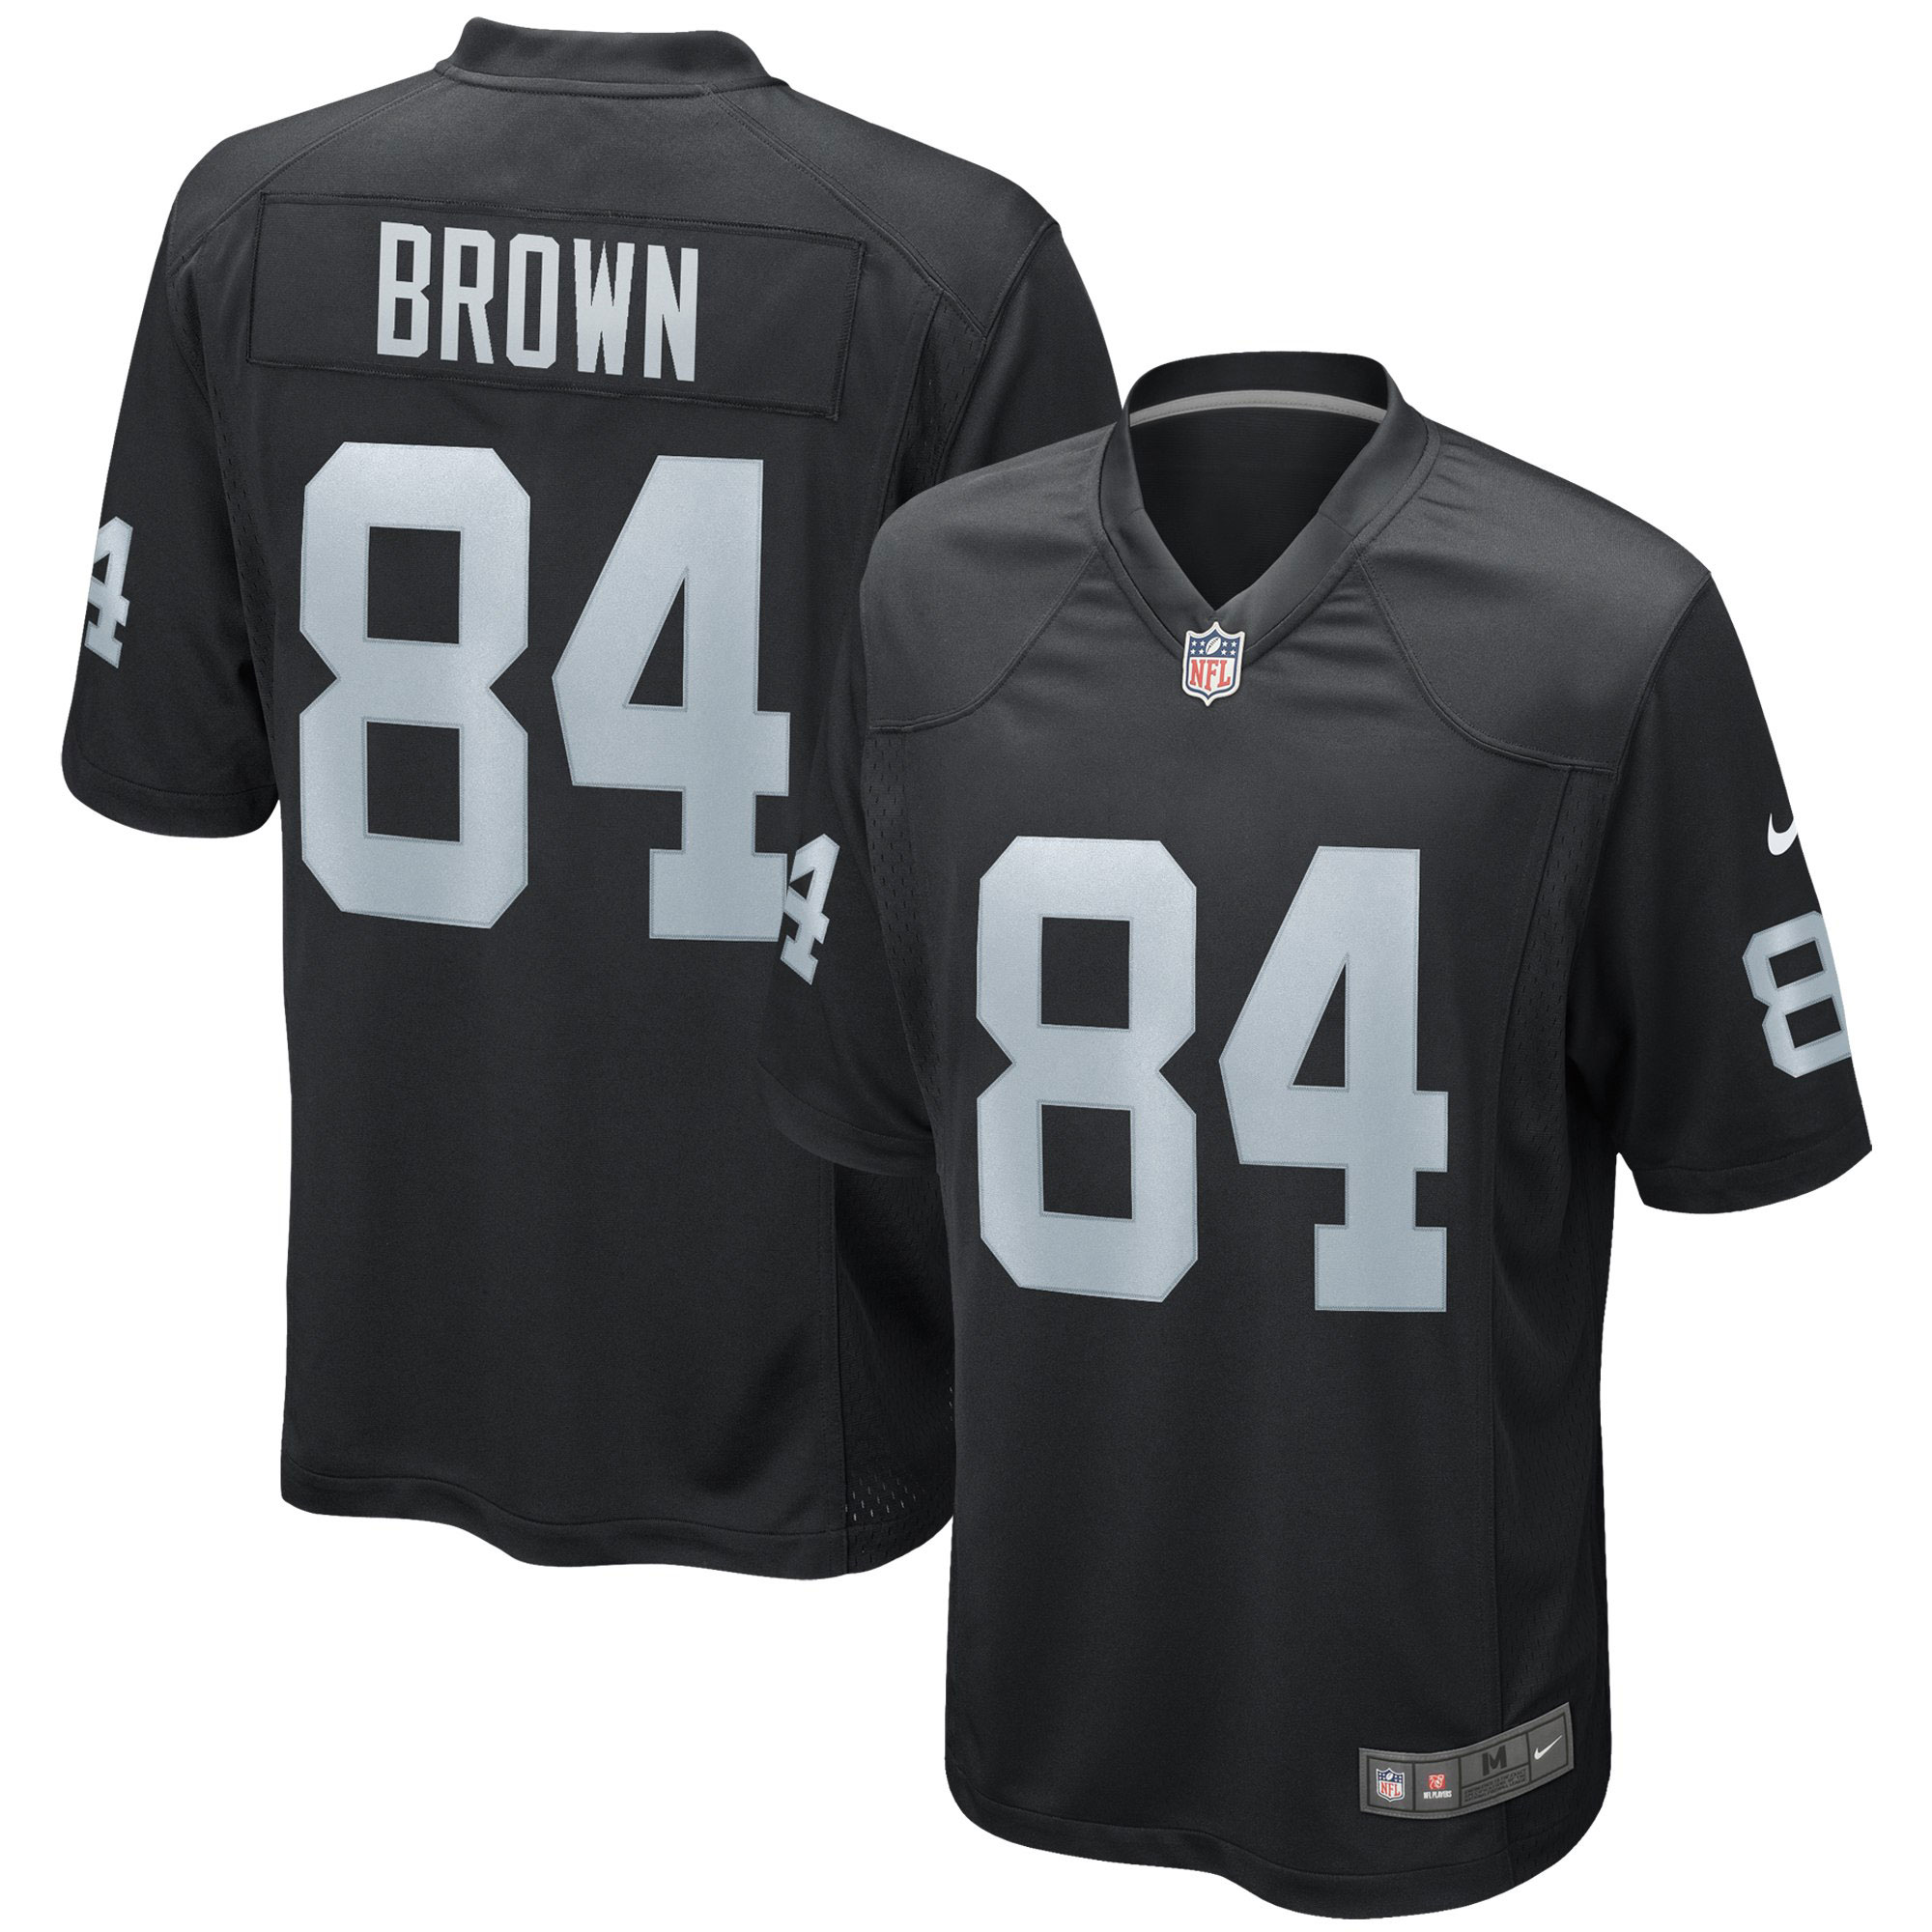 Home Game Jersey - Antonio Brown